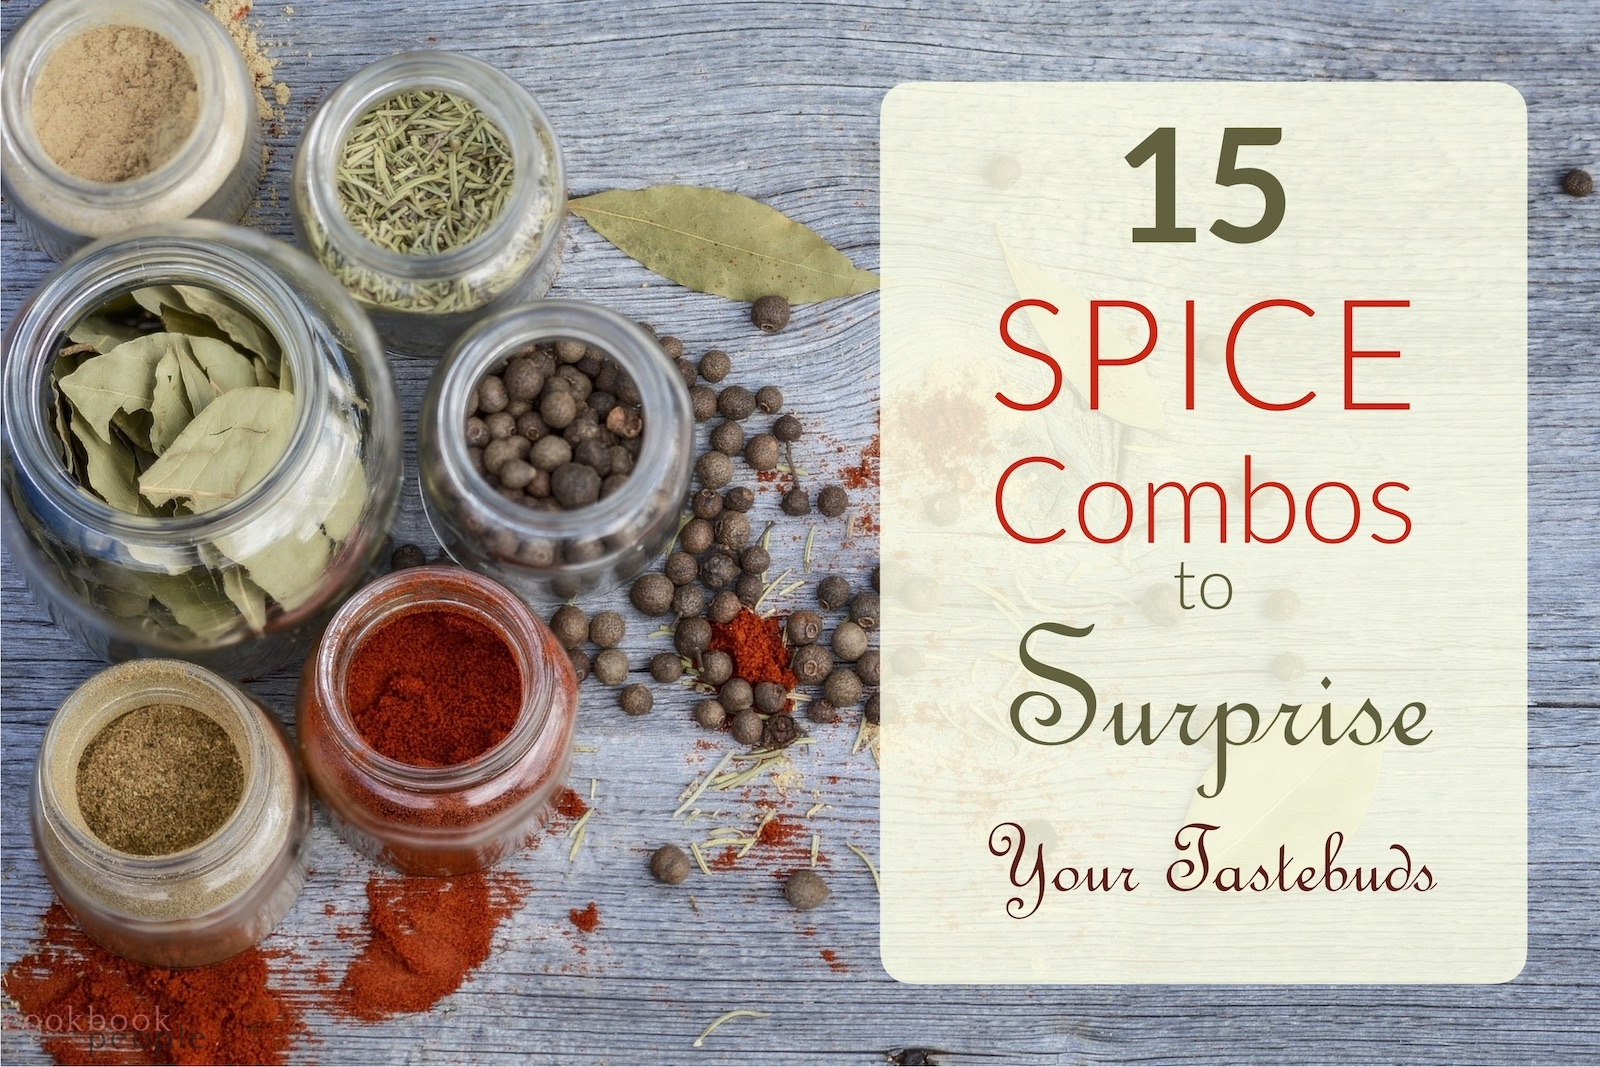 jars of spices and sprinkled spices on grey surface with title: 15 Spice Combos to Surprise Your Tastebuds